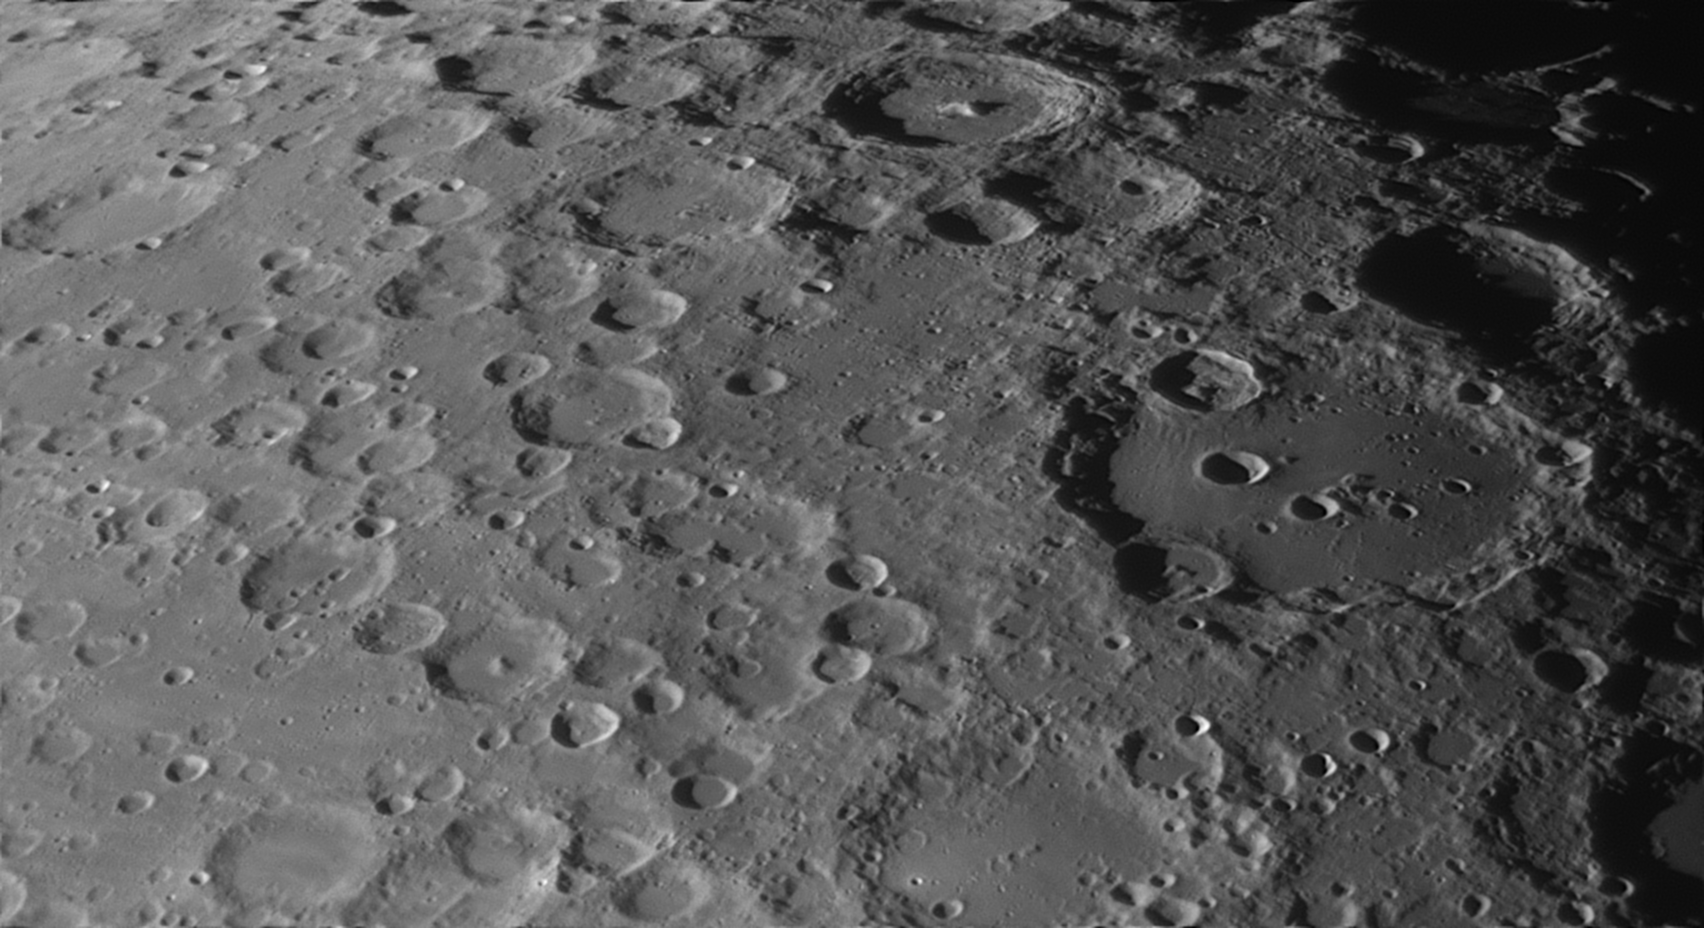 Clavius.png.9559baed235f3566a58318785bff33e1.png